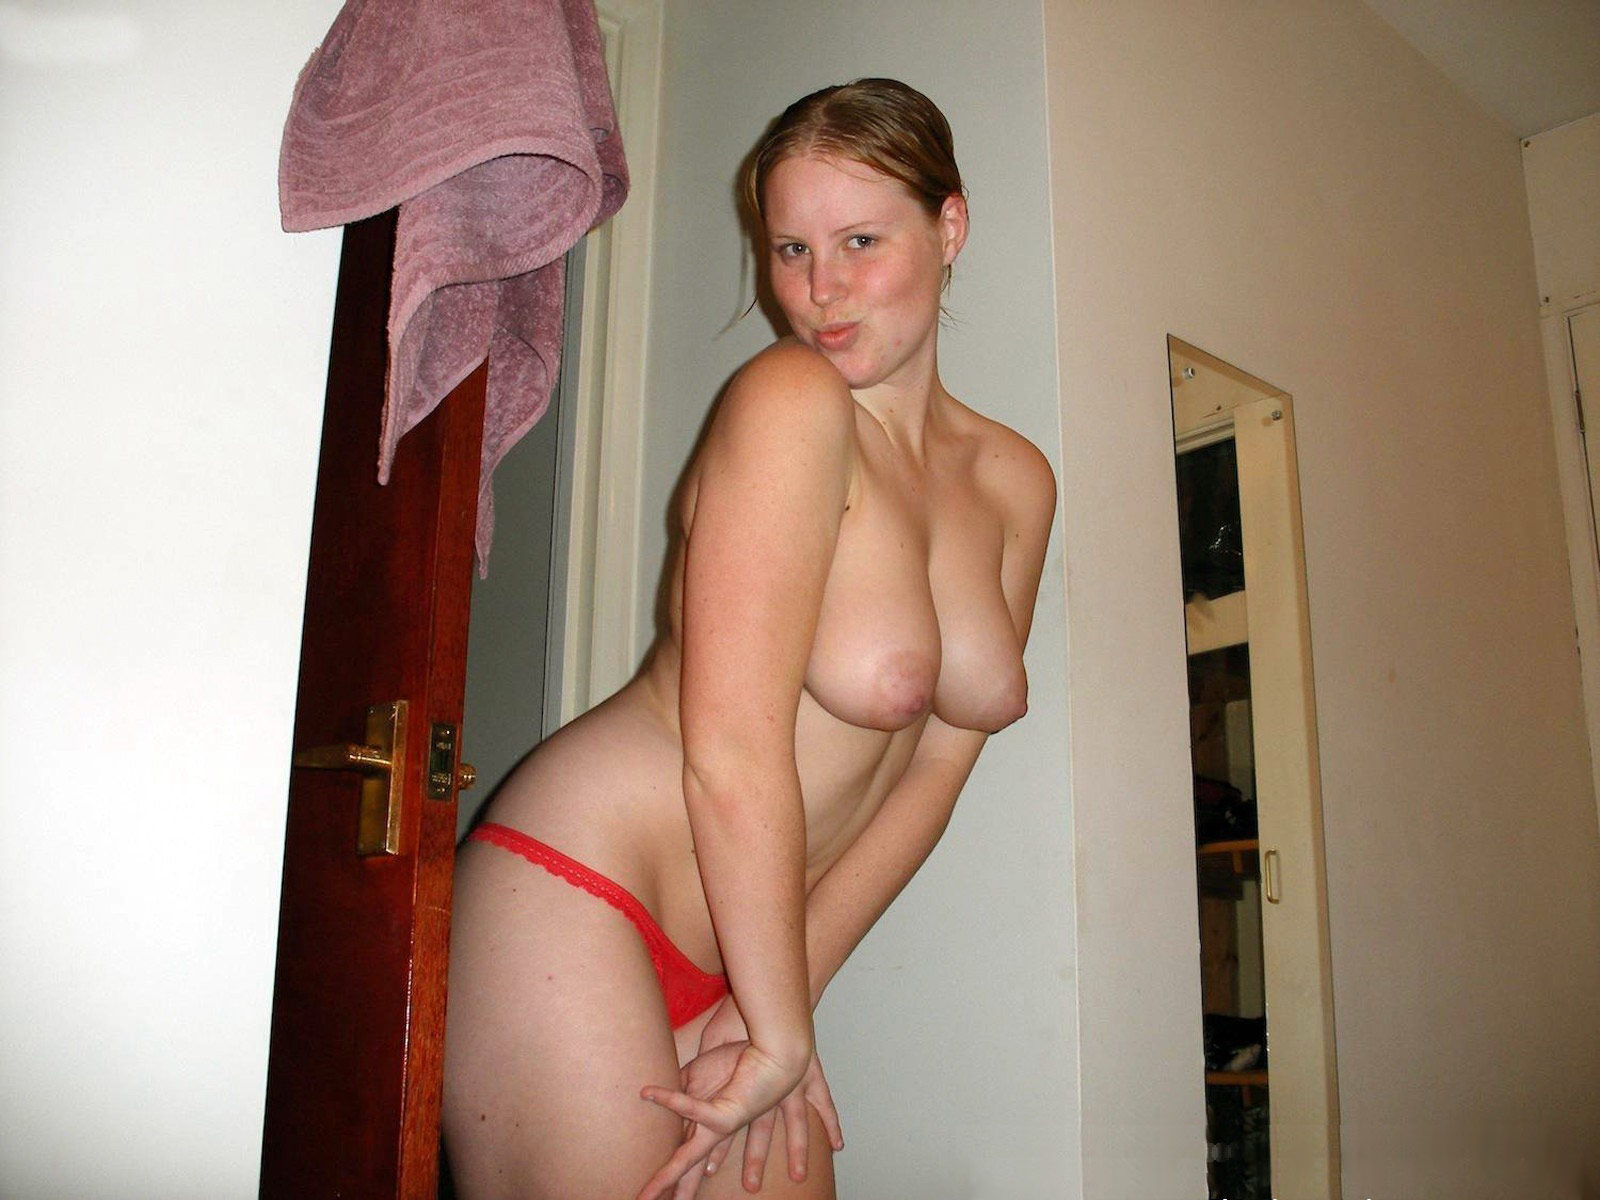 naked girl hanging out